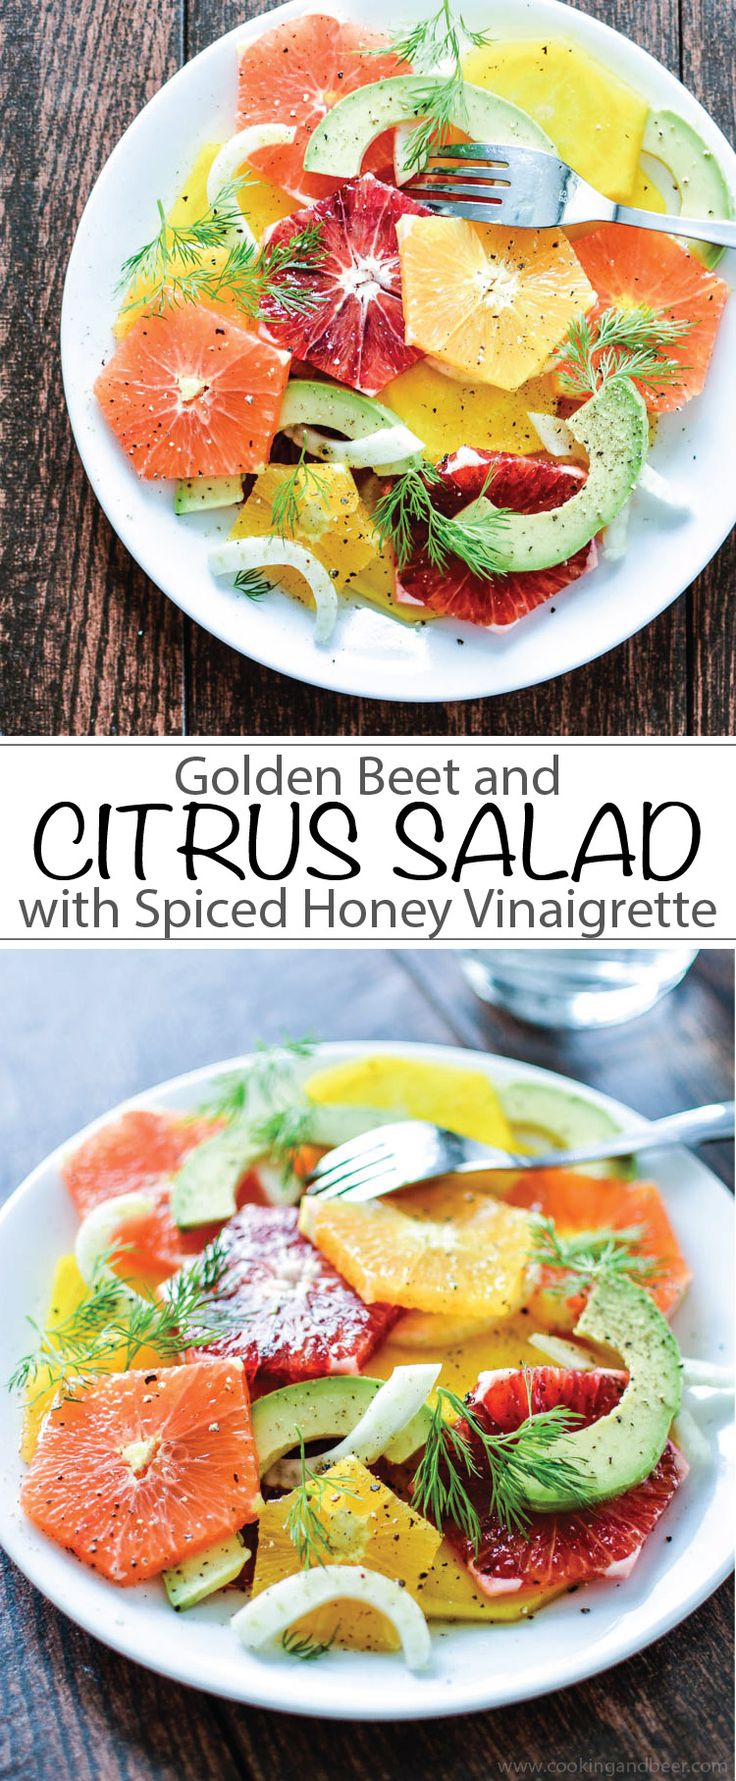 Golden Beet and Citrus Salad with Spiced Honey Vinaigrette | www.cookingandbeer.com | @jalanesulia